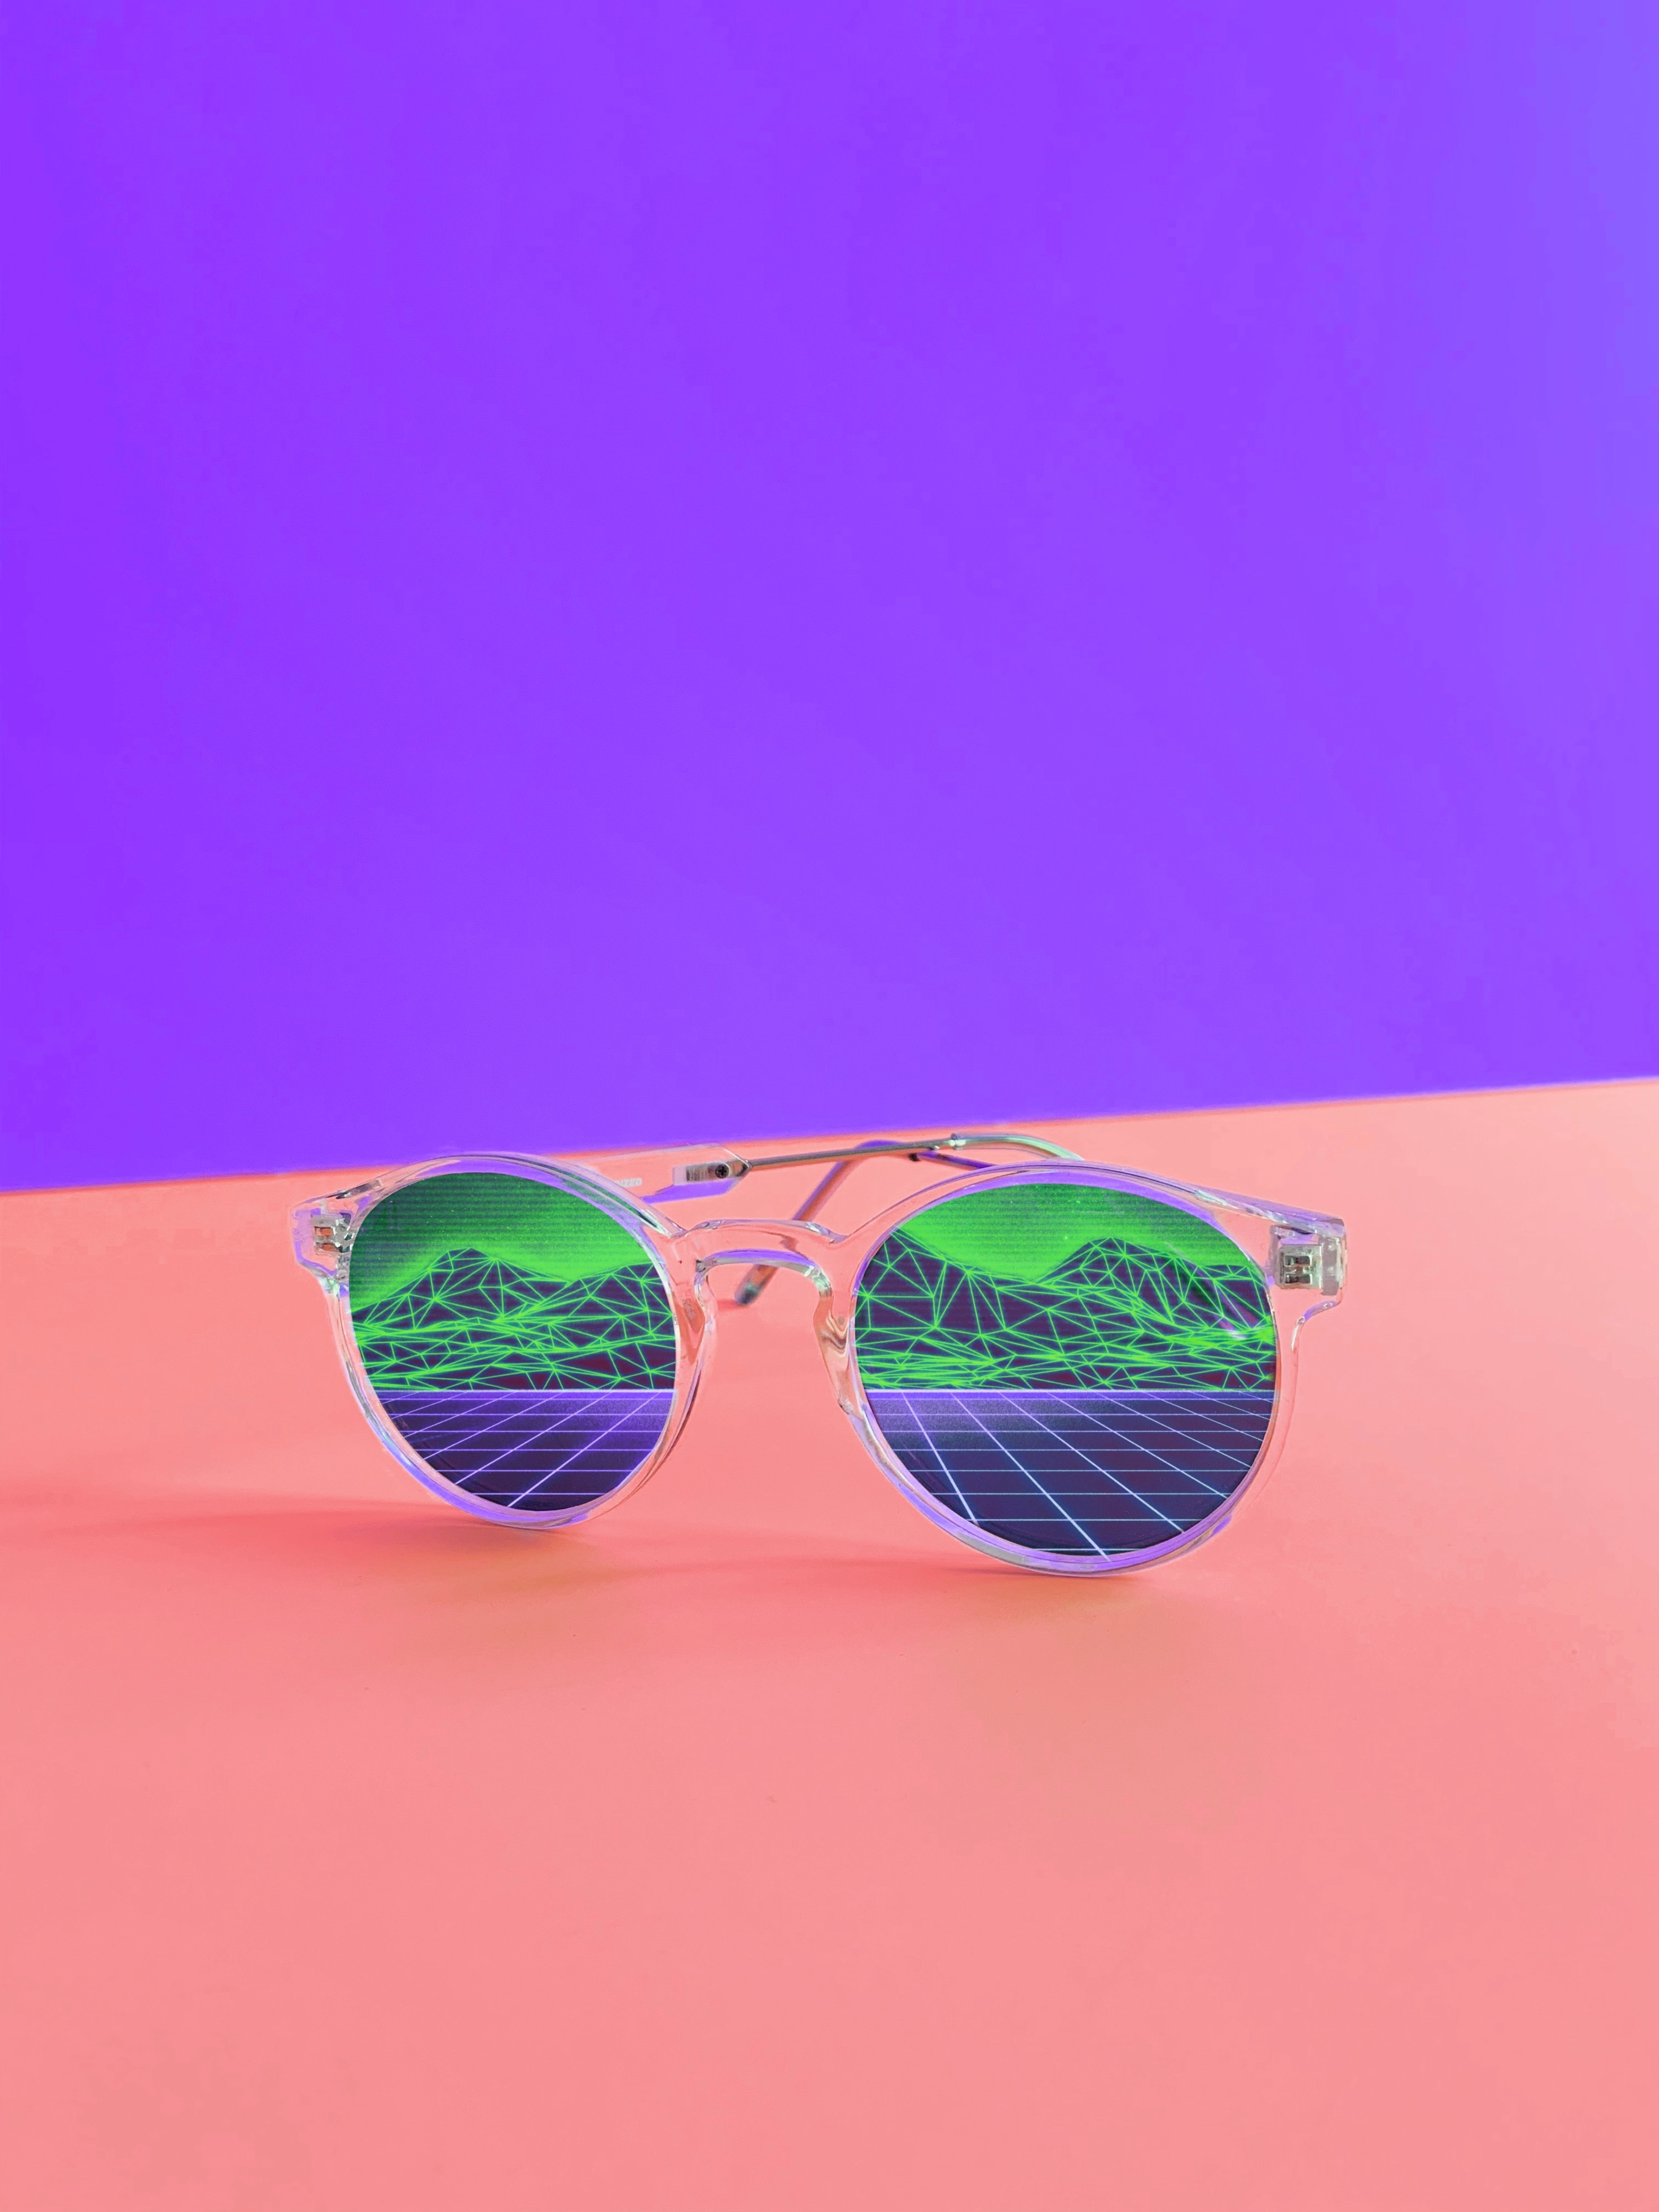 152346 download wallpaper Miscellanea, Miscellaneous, Sunglasses, Glasses, Spectacles, Retro, Accessory, Style screensavers and pictures for free